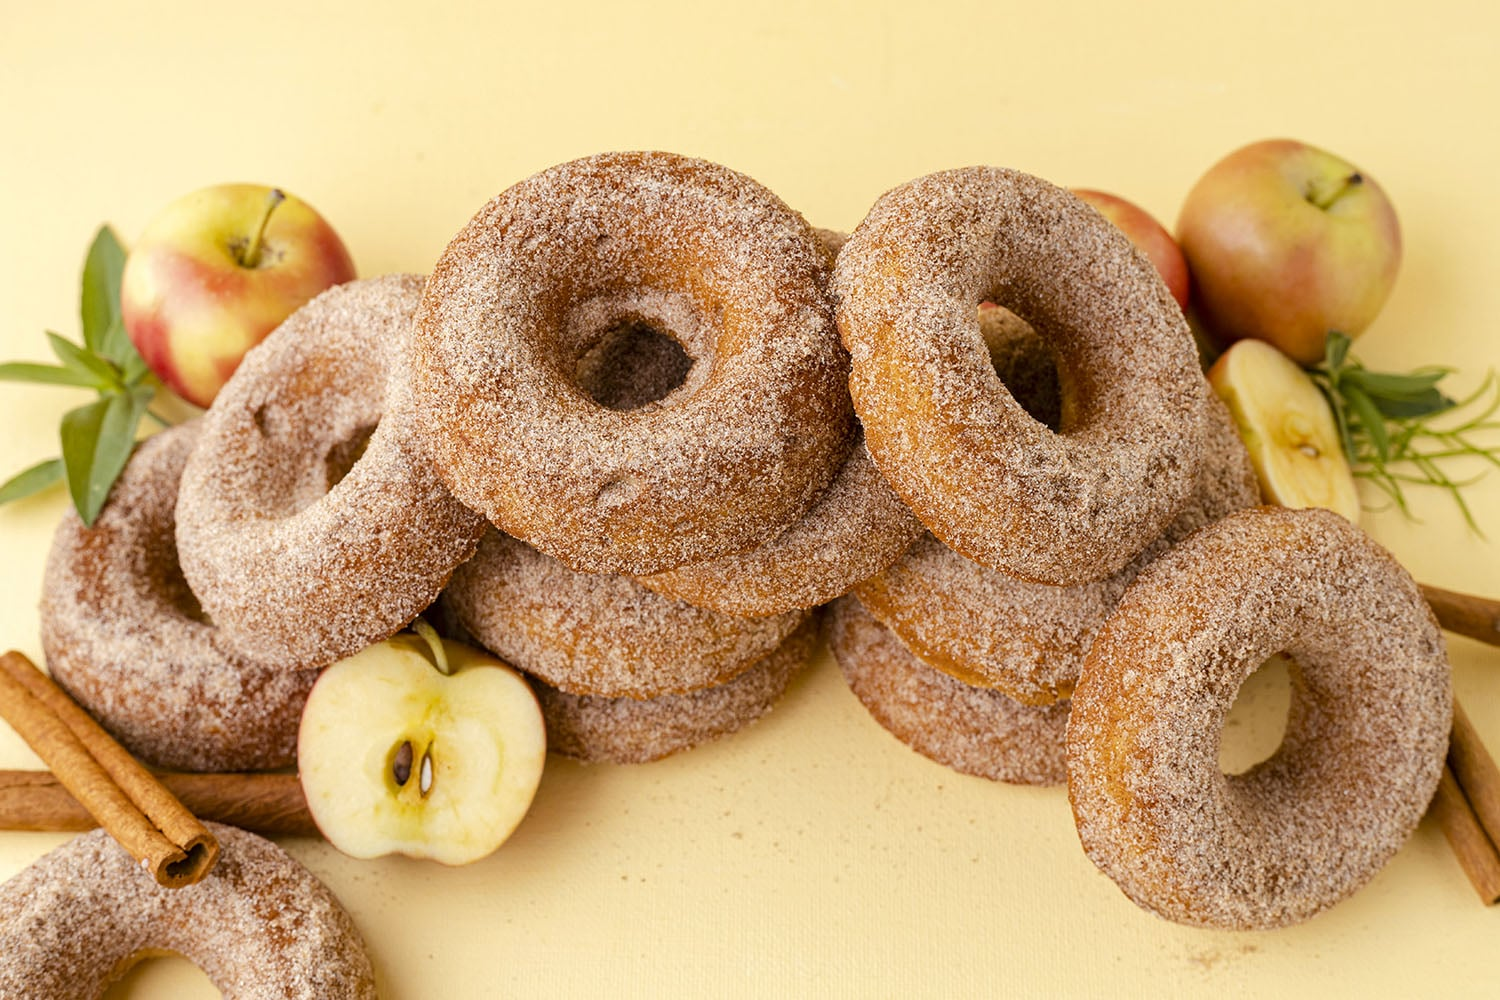 apple cider donuts in a stack with apples and cinnamon sticks on a yellow background